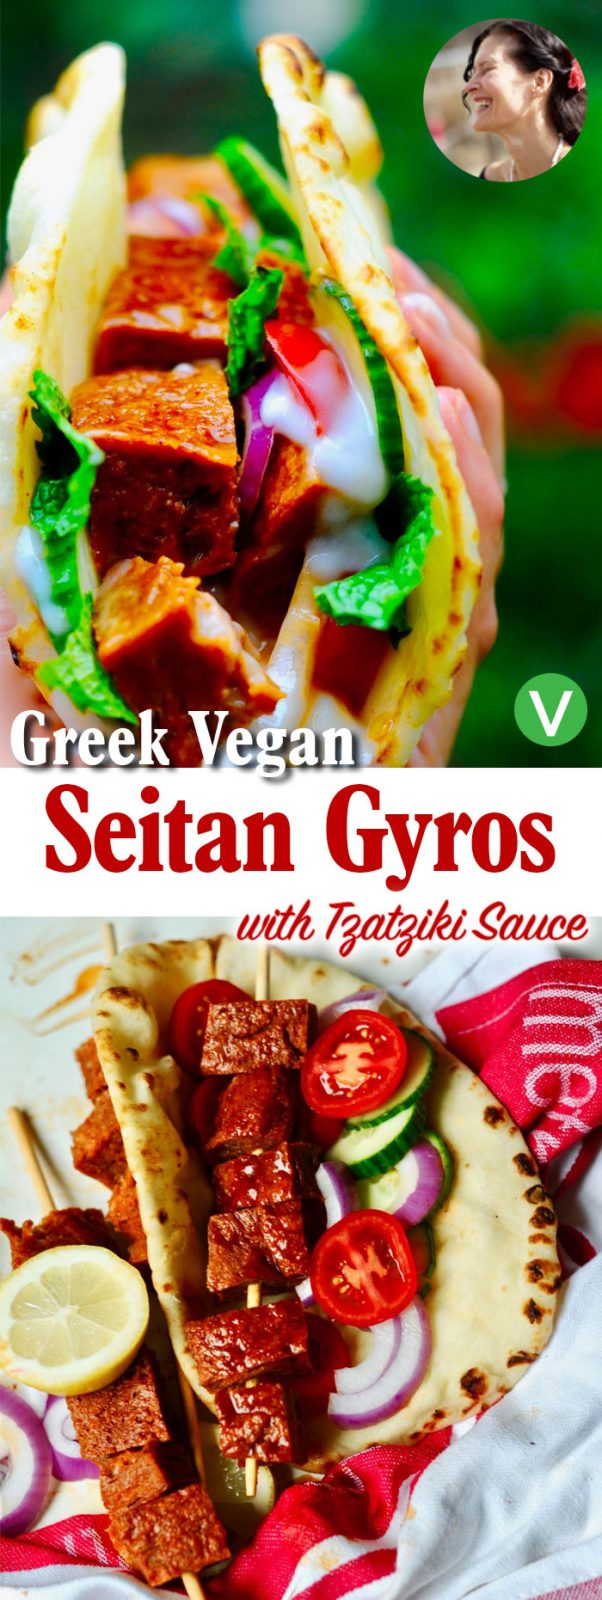 Greek-Vegan-Seitan-Gyros-with-Tzatziki-Sauce